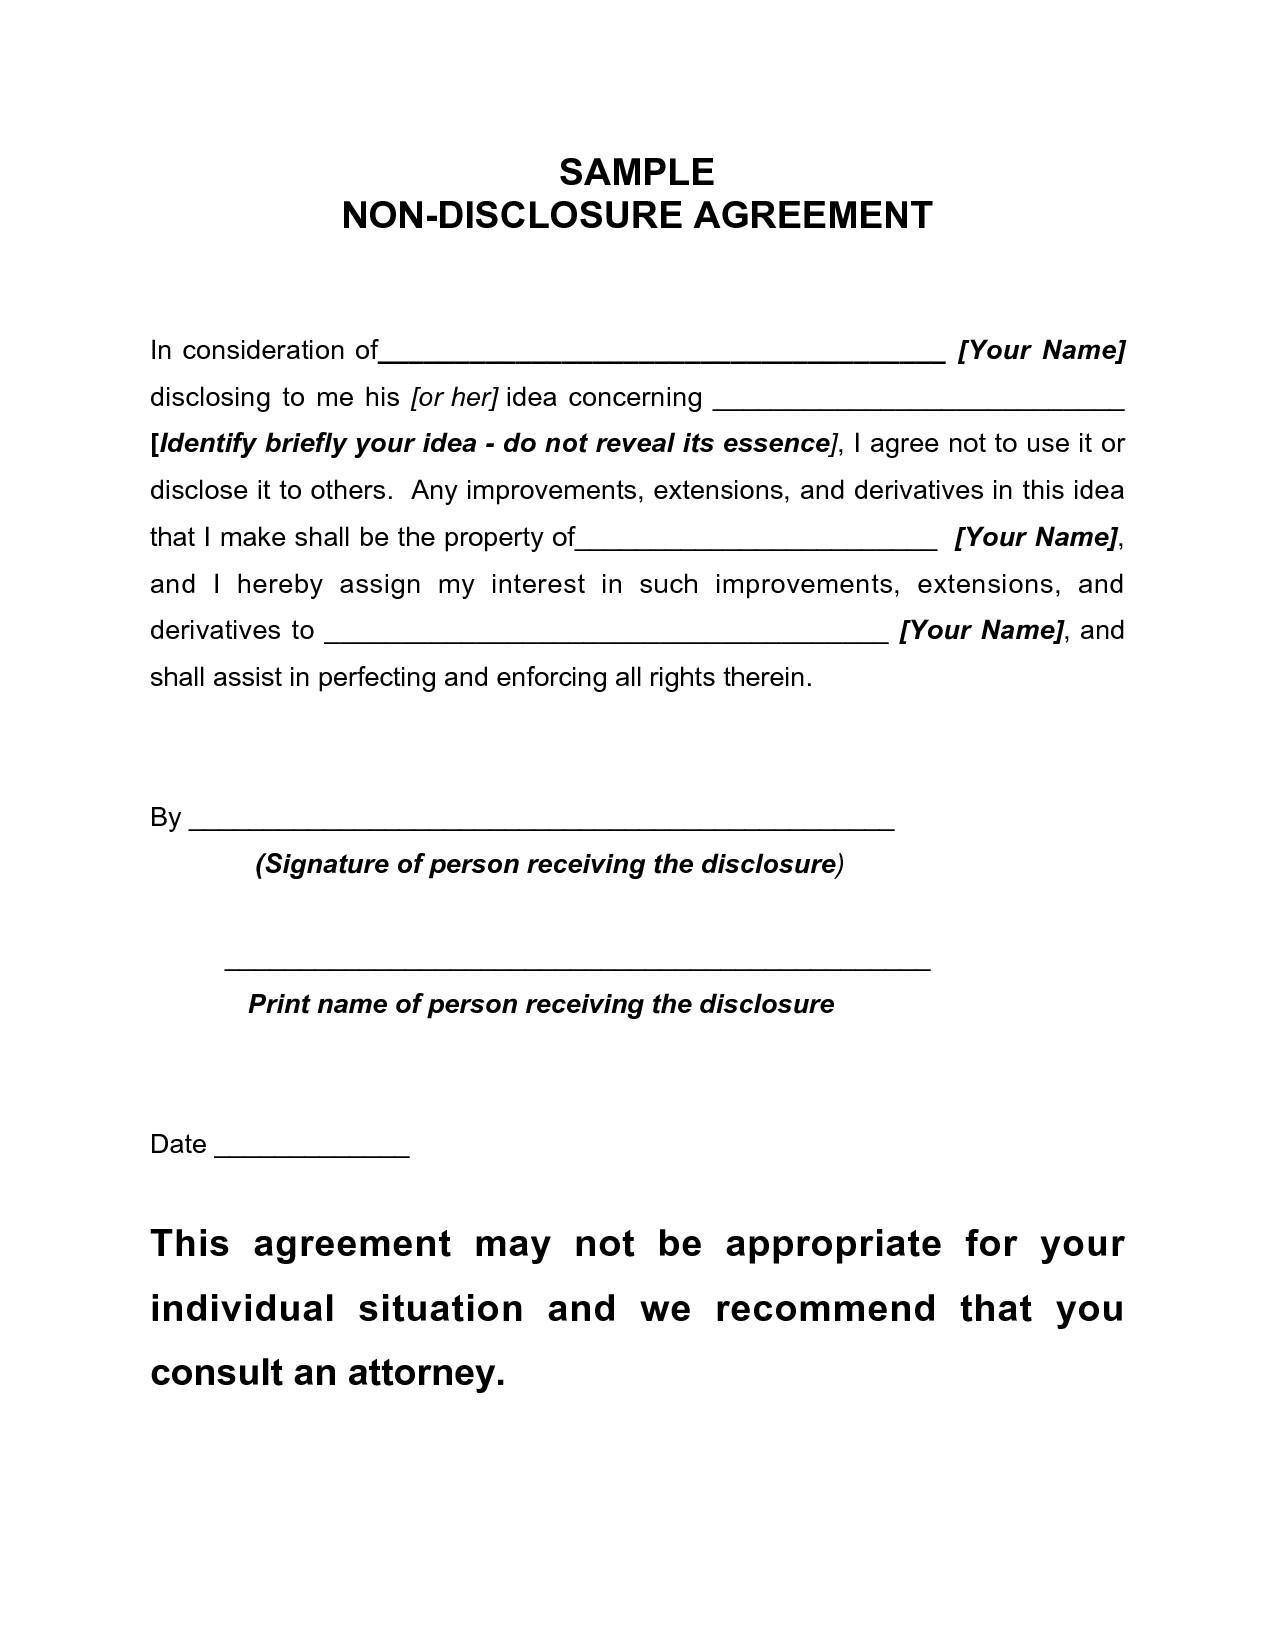 Free Agreement Form Non Disclosure Agreement Sample Free Printable - Free Printable Non Disclosure Agreement Form